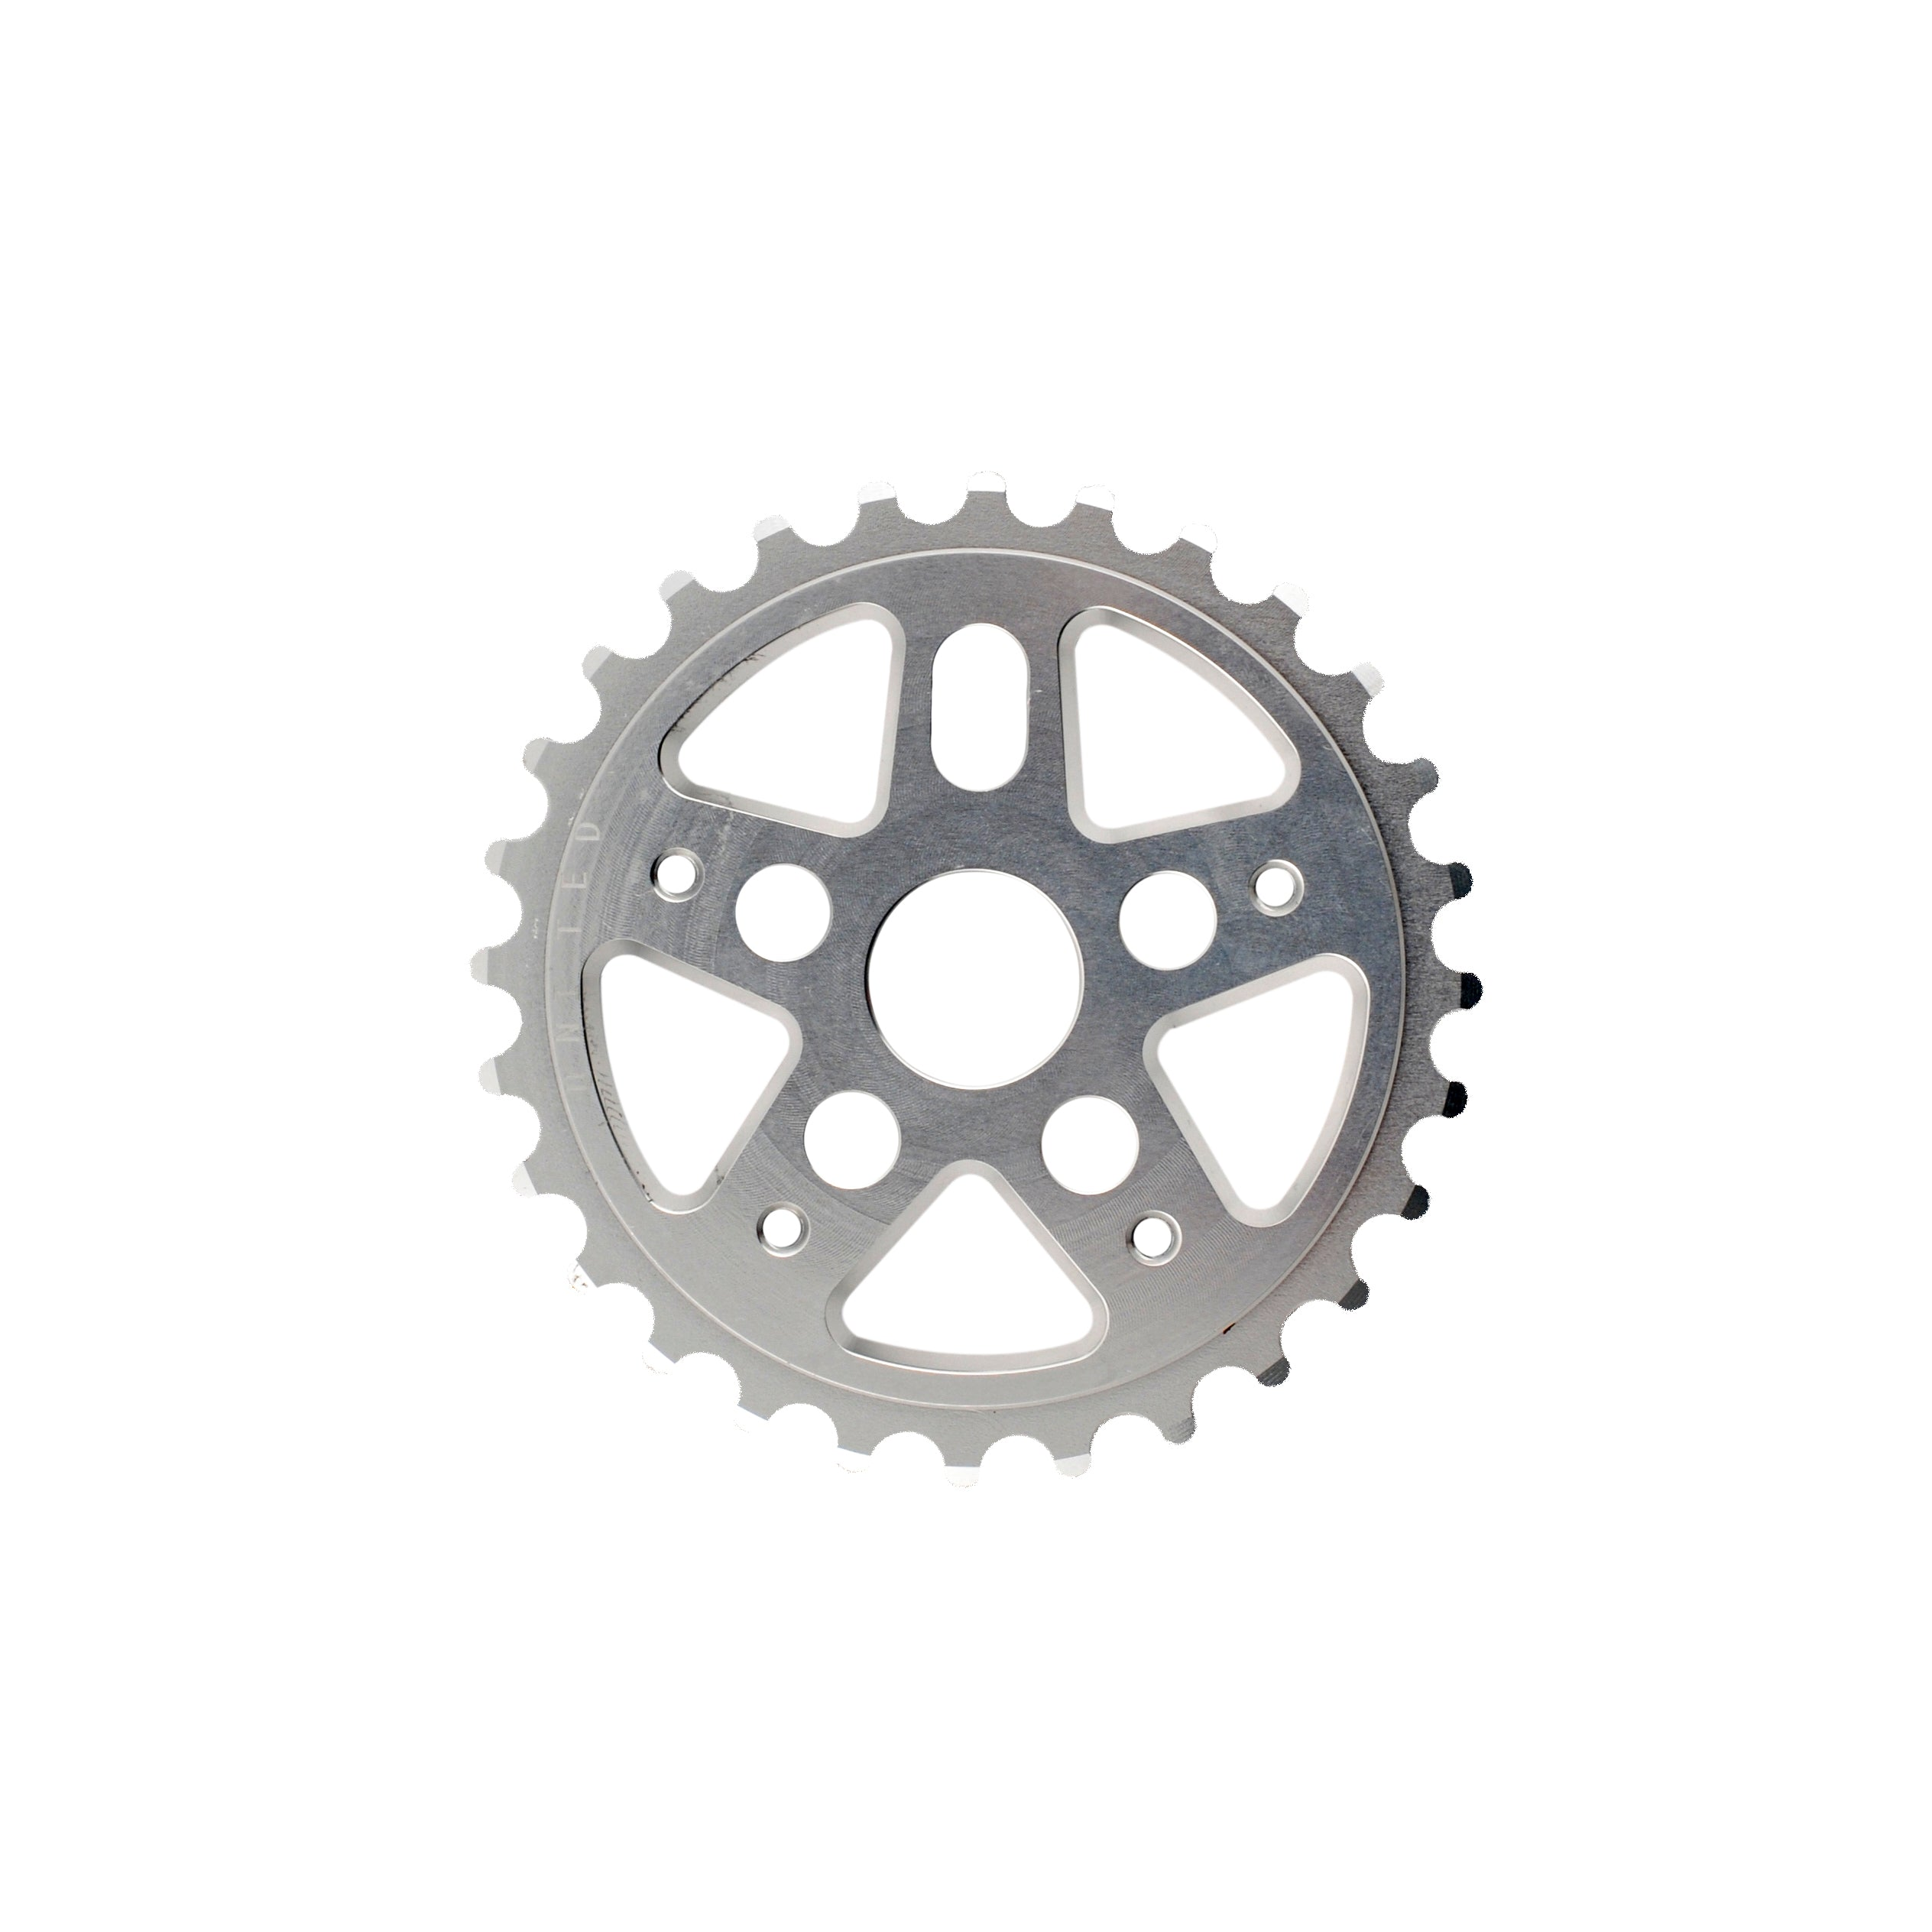 MDLCLS Sprocket - Polished